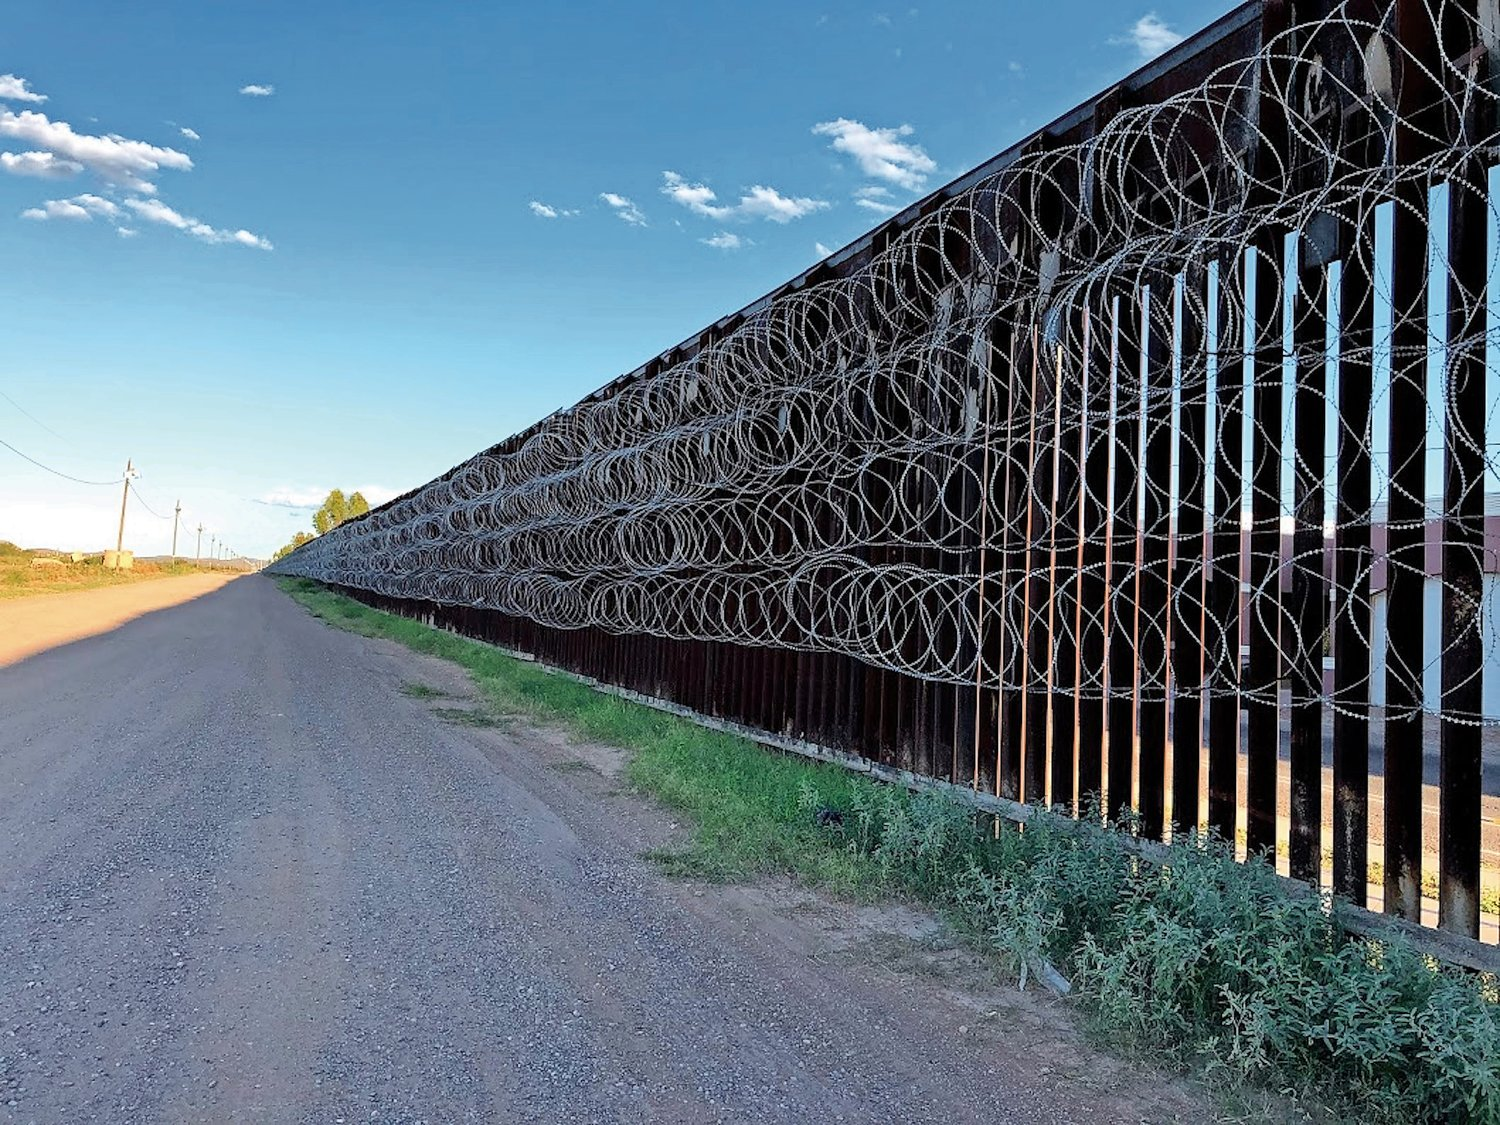 A portion of the U.S.-Mexico border in Douglas, Ariz., boasts curls of barbed wire.